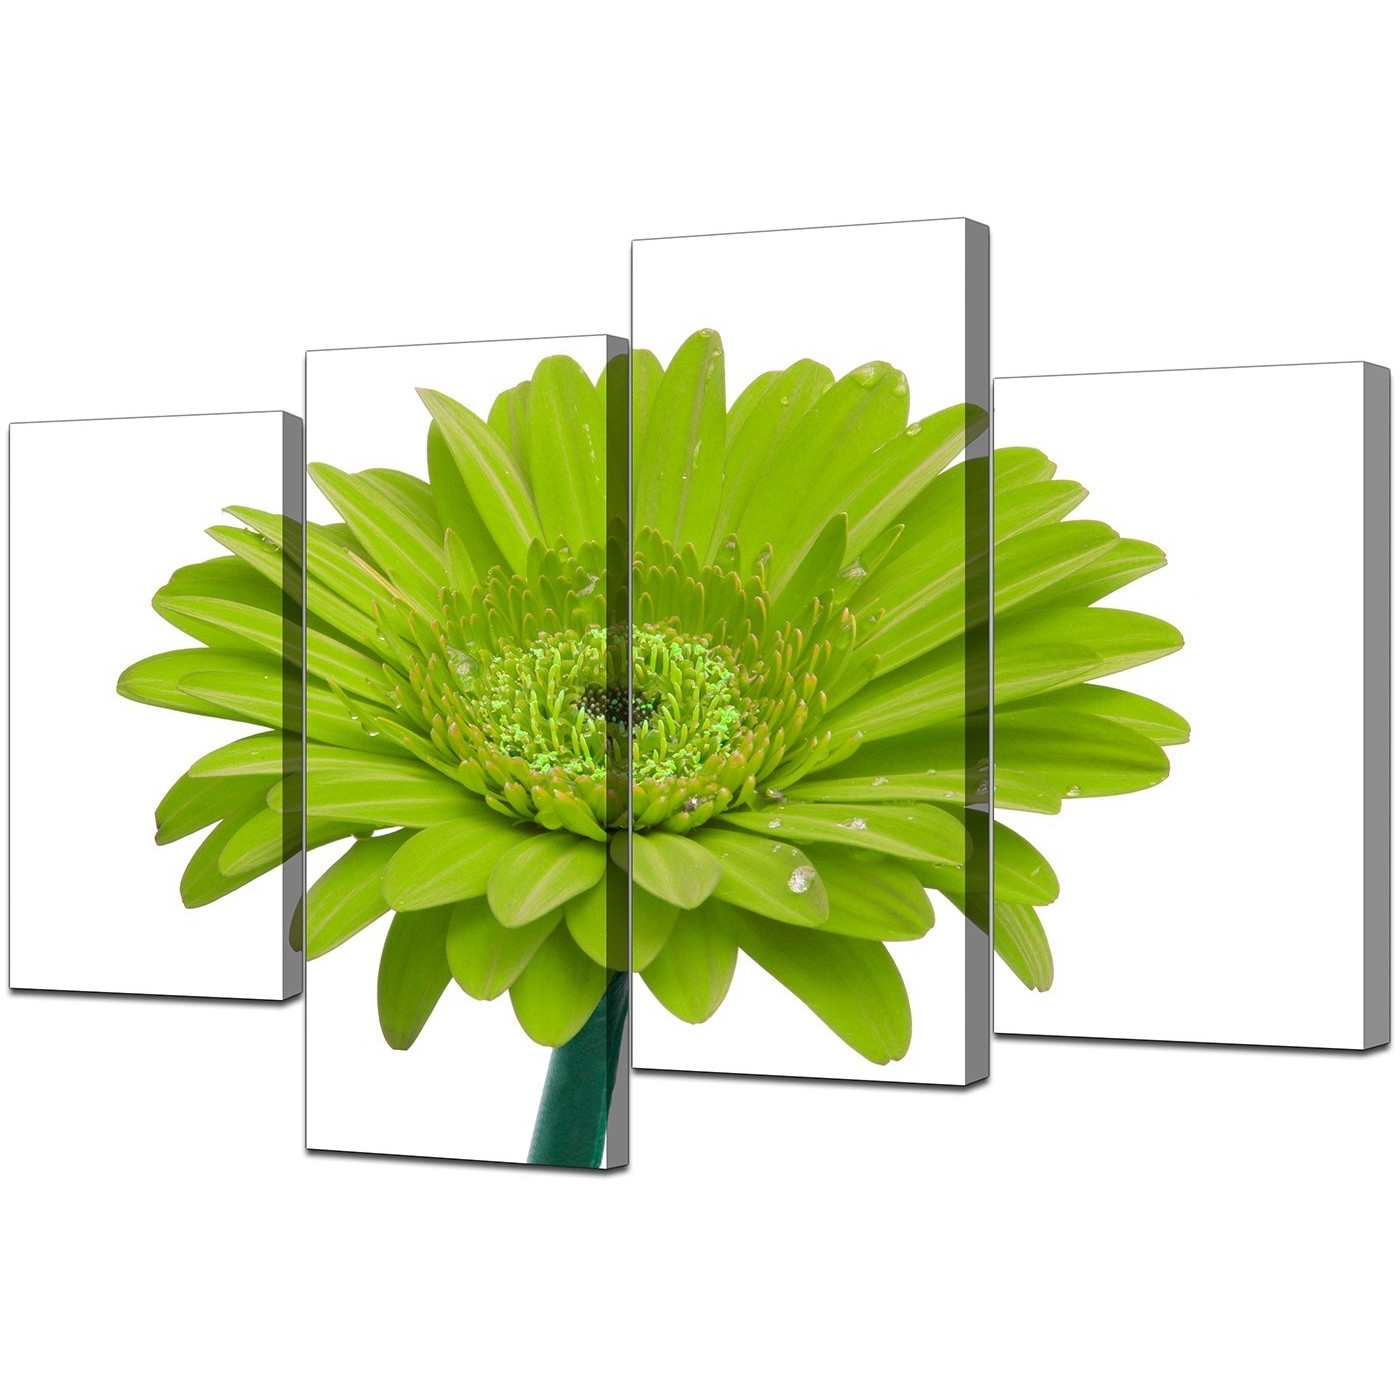 Green Wall Art Regarding Recent Canvas Wall Art Of Flower In Lime Green For Your Living Room (View 5 of 15)